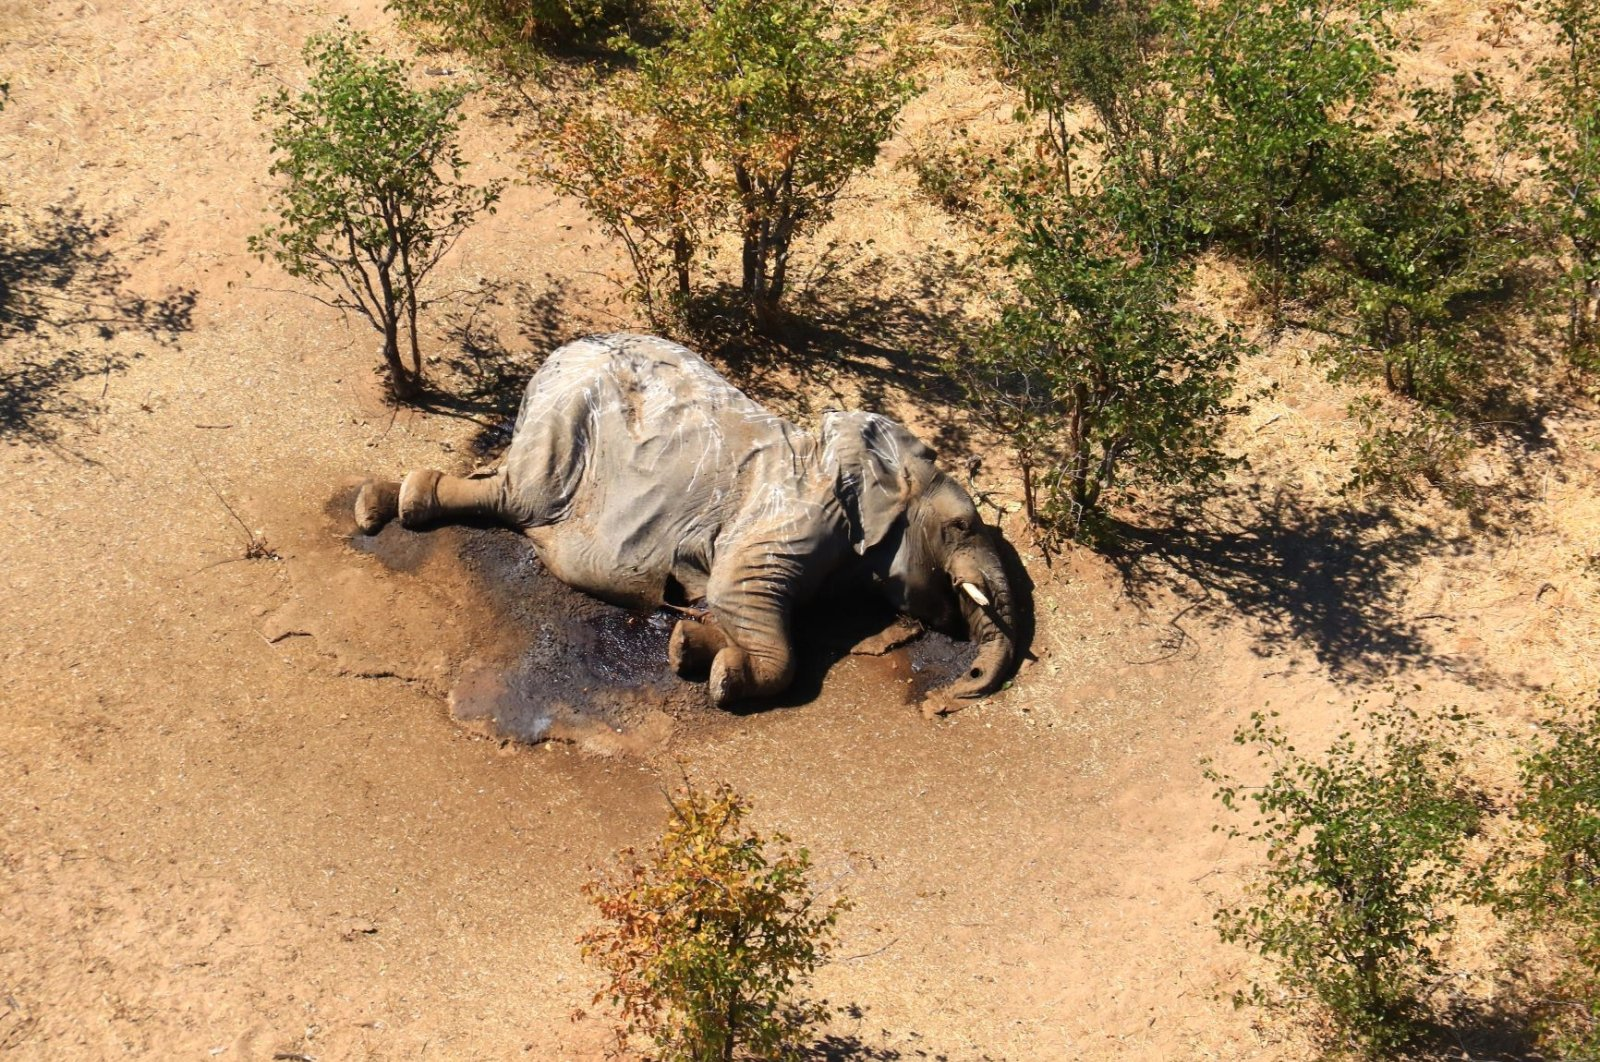 Aerial view of the carcass of one of the approximately 350 elephants that have been found dead for unknown reasons in the Okavango Delta area, near the town of Maun, northern Botswana, July 3, 2020. (EPA-EFE Photo)